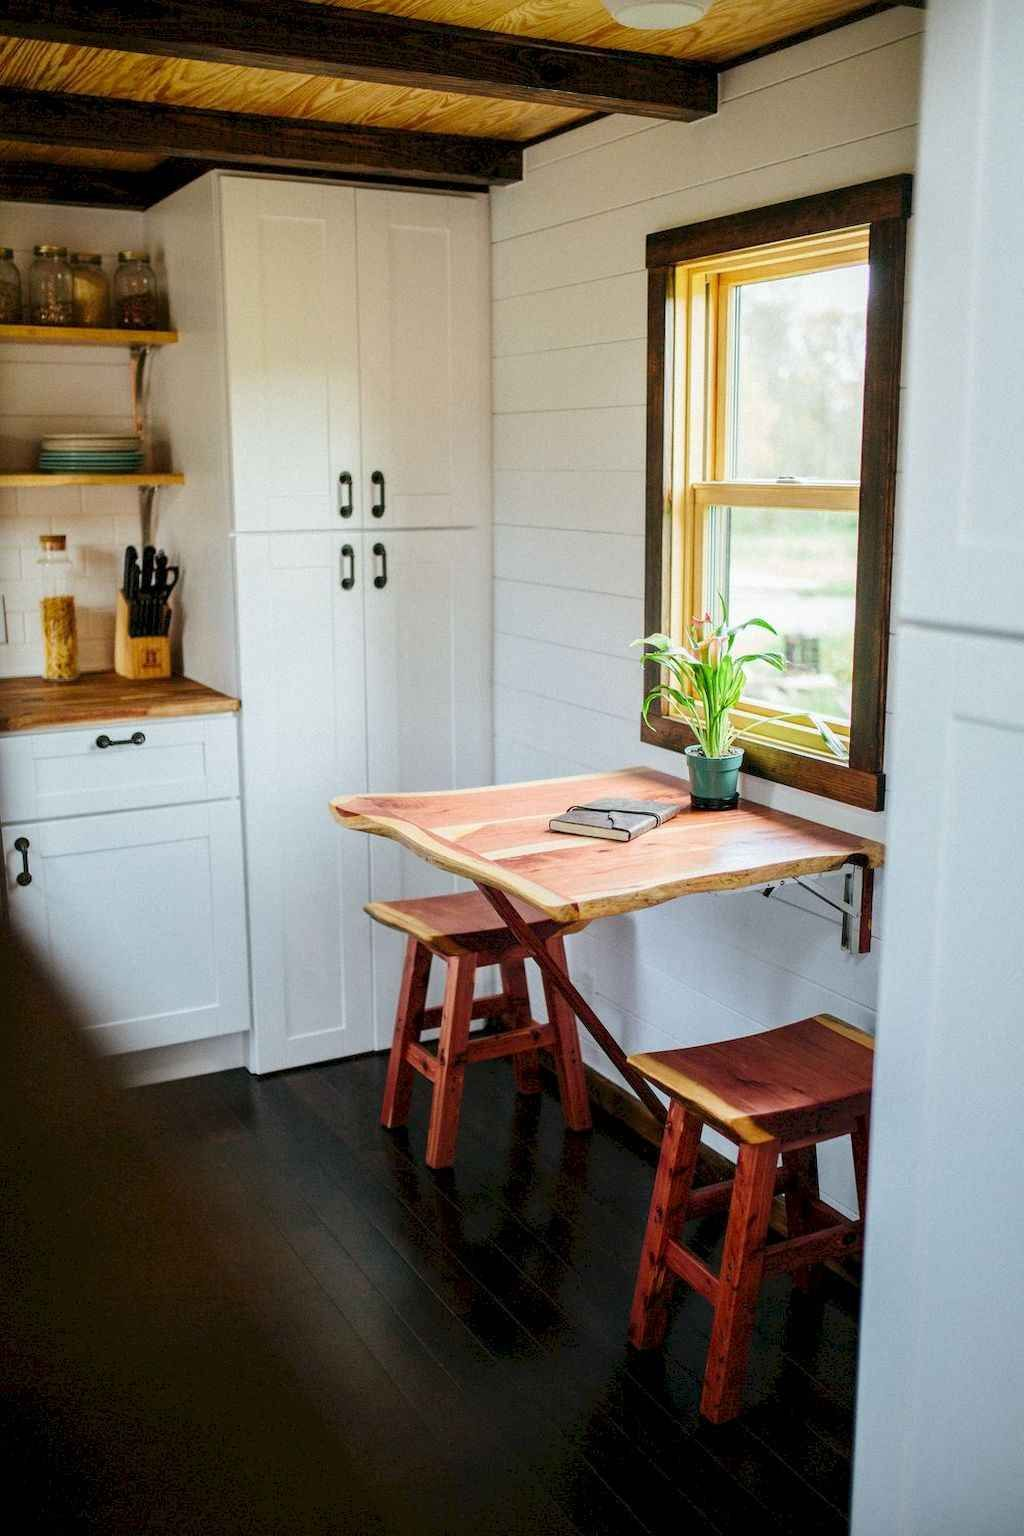 70 Tiny House Kitchen Design Ideas #tinyhousekitchens